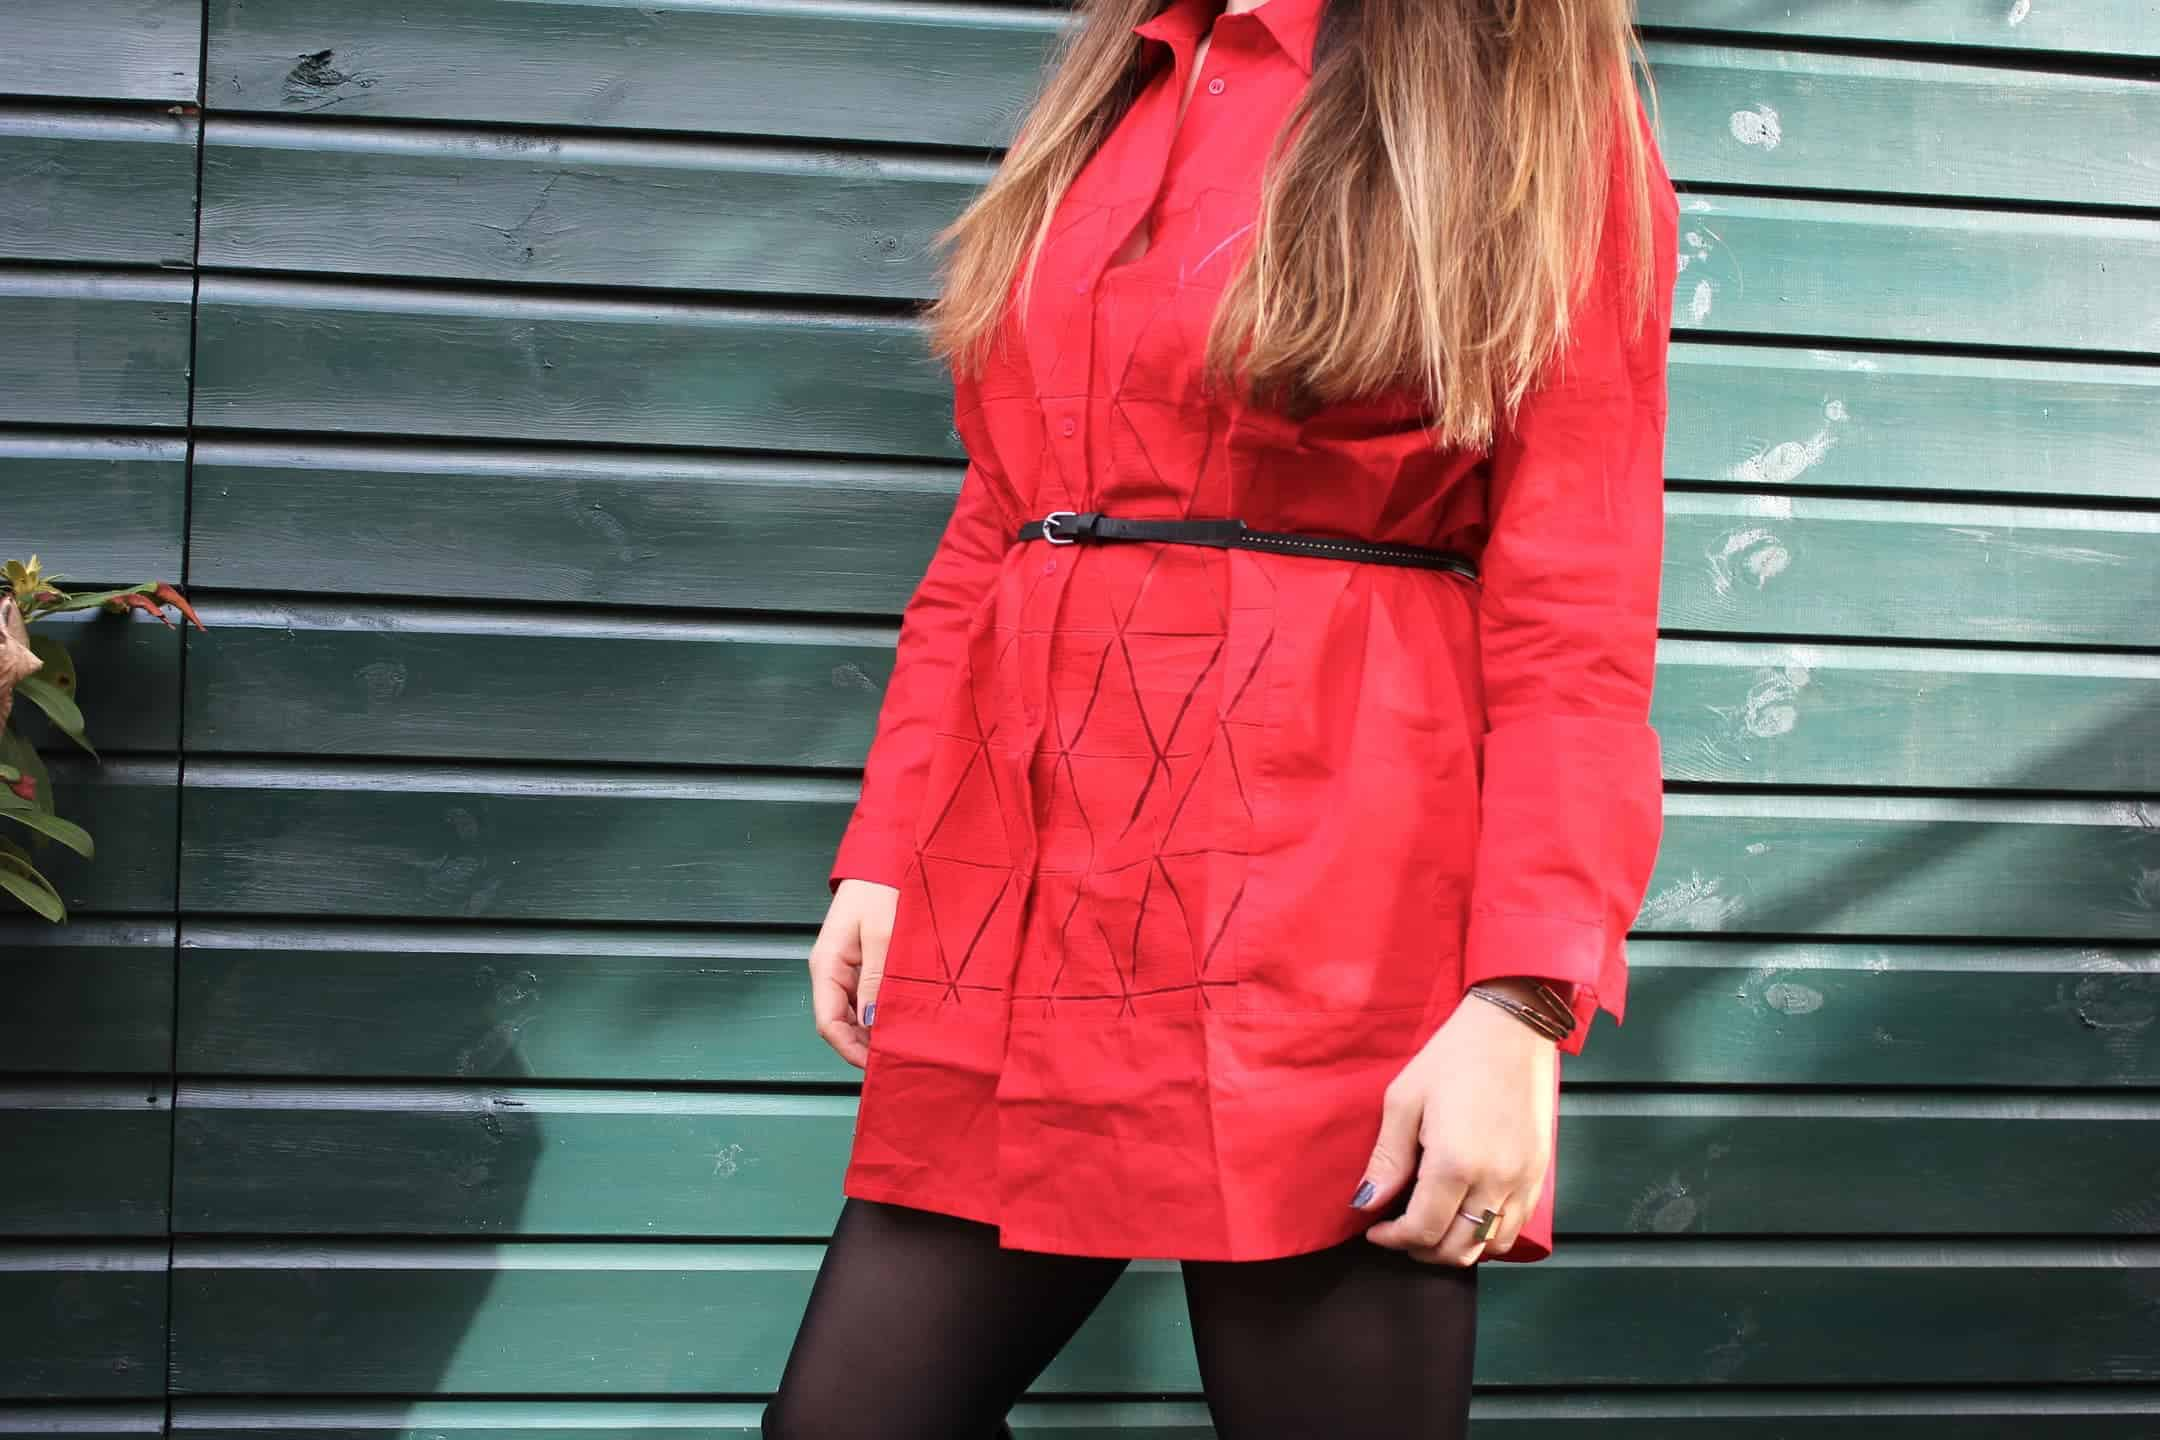 How to wear red this season, FashionBite